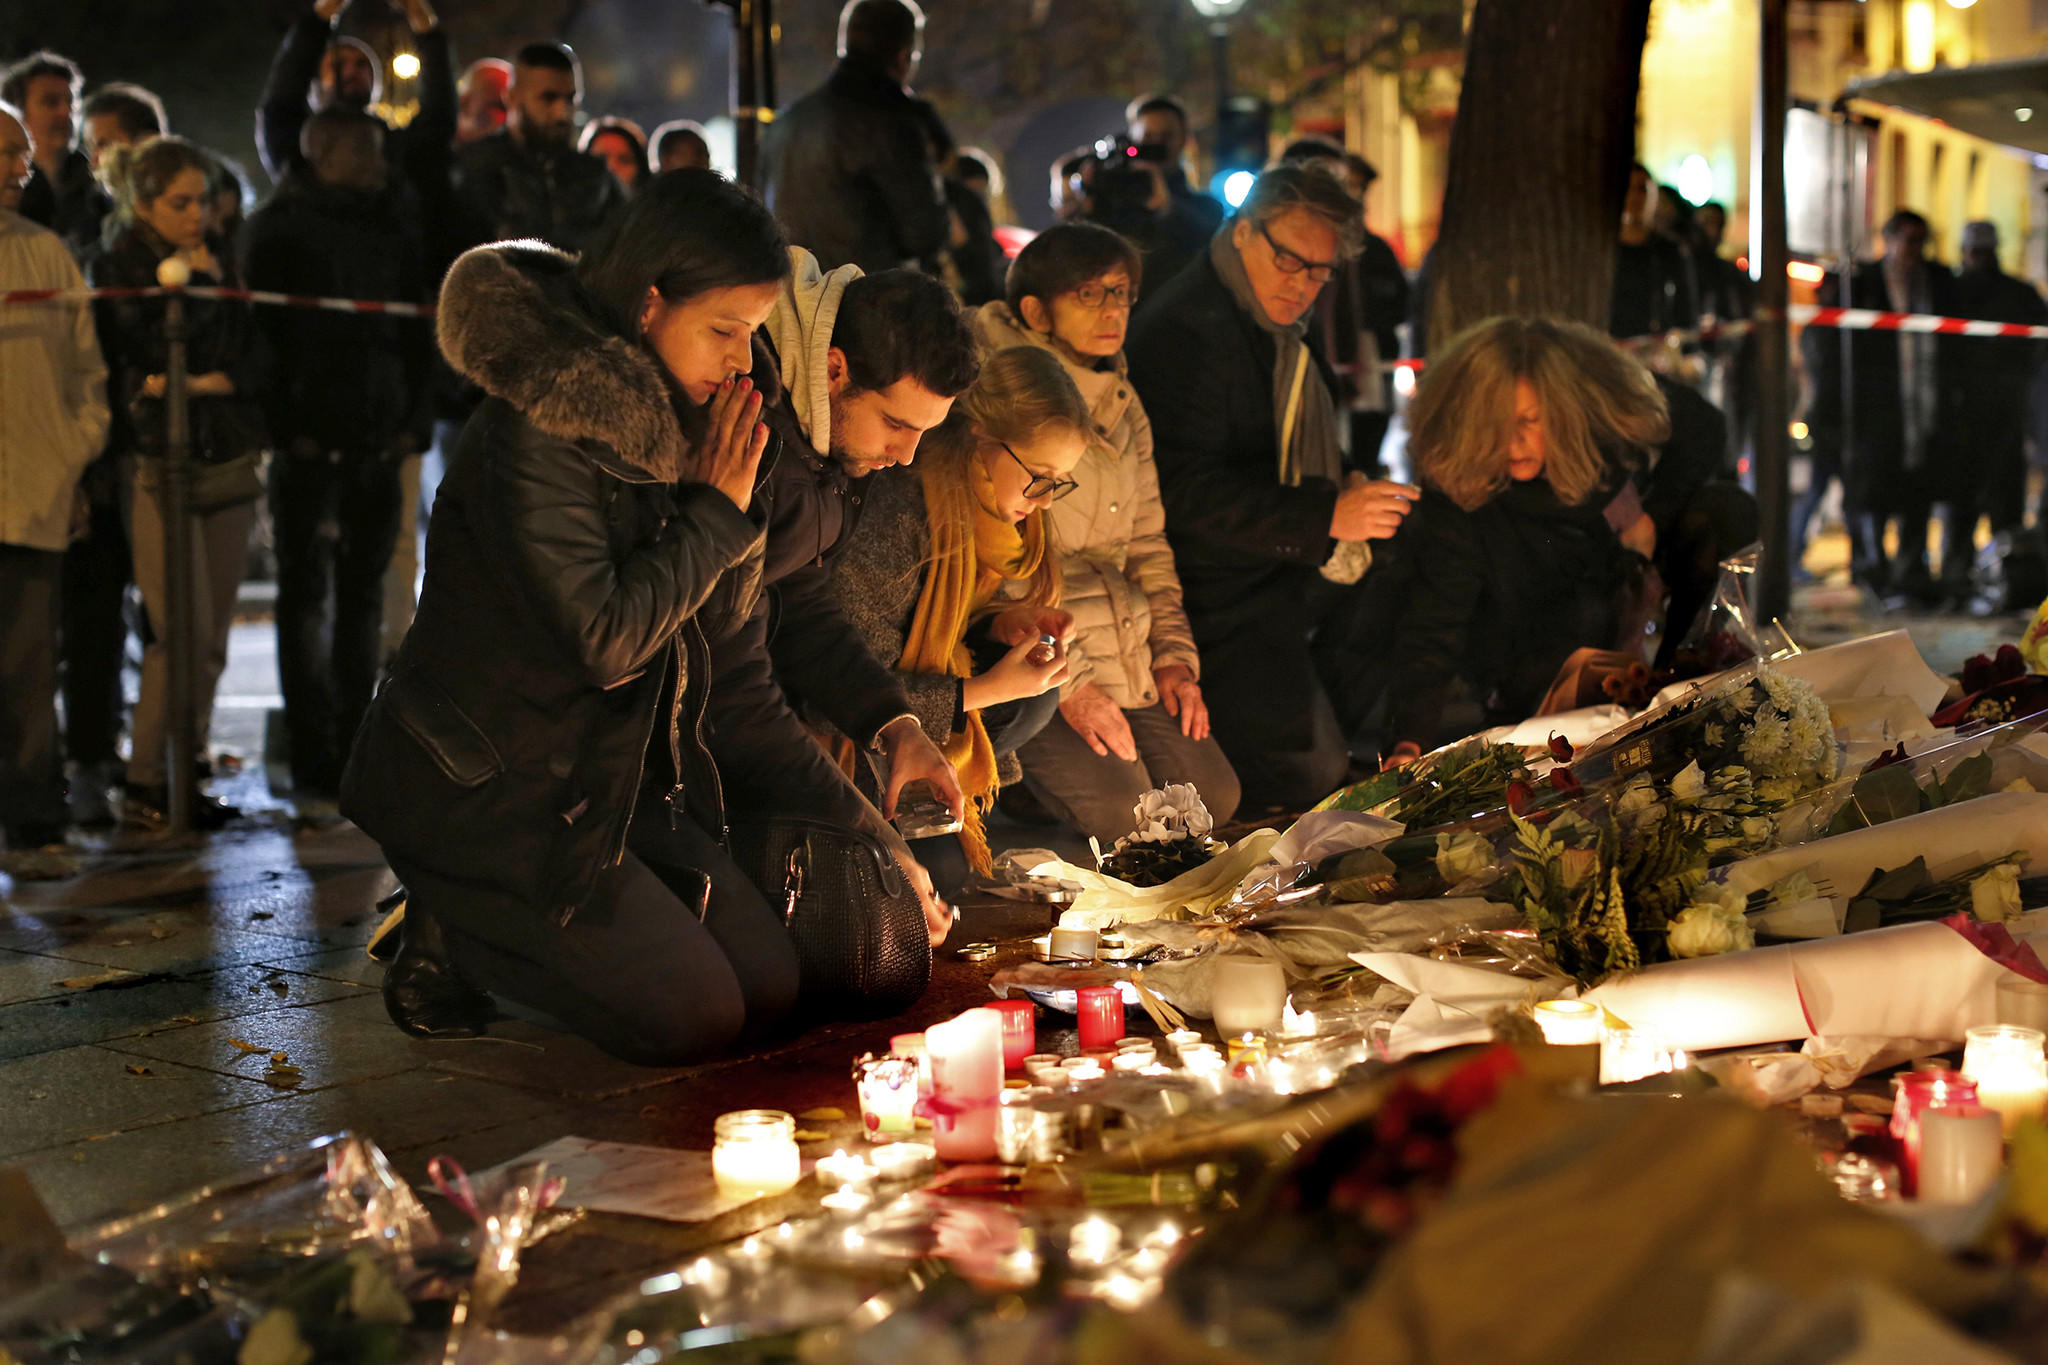 Mourners place flowers and candles outside the Bataclan theater in Paris. (Carolyn Cole / Los Angeles Times)